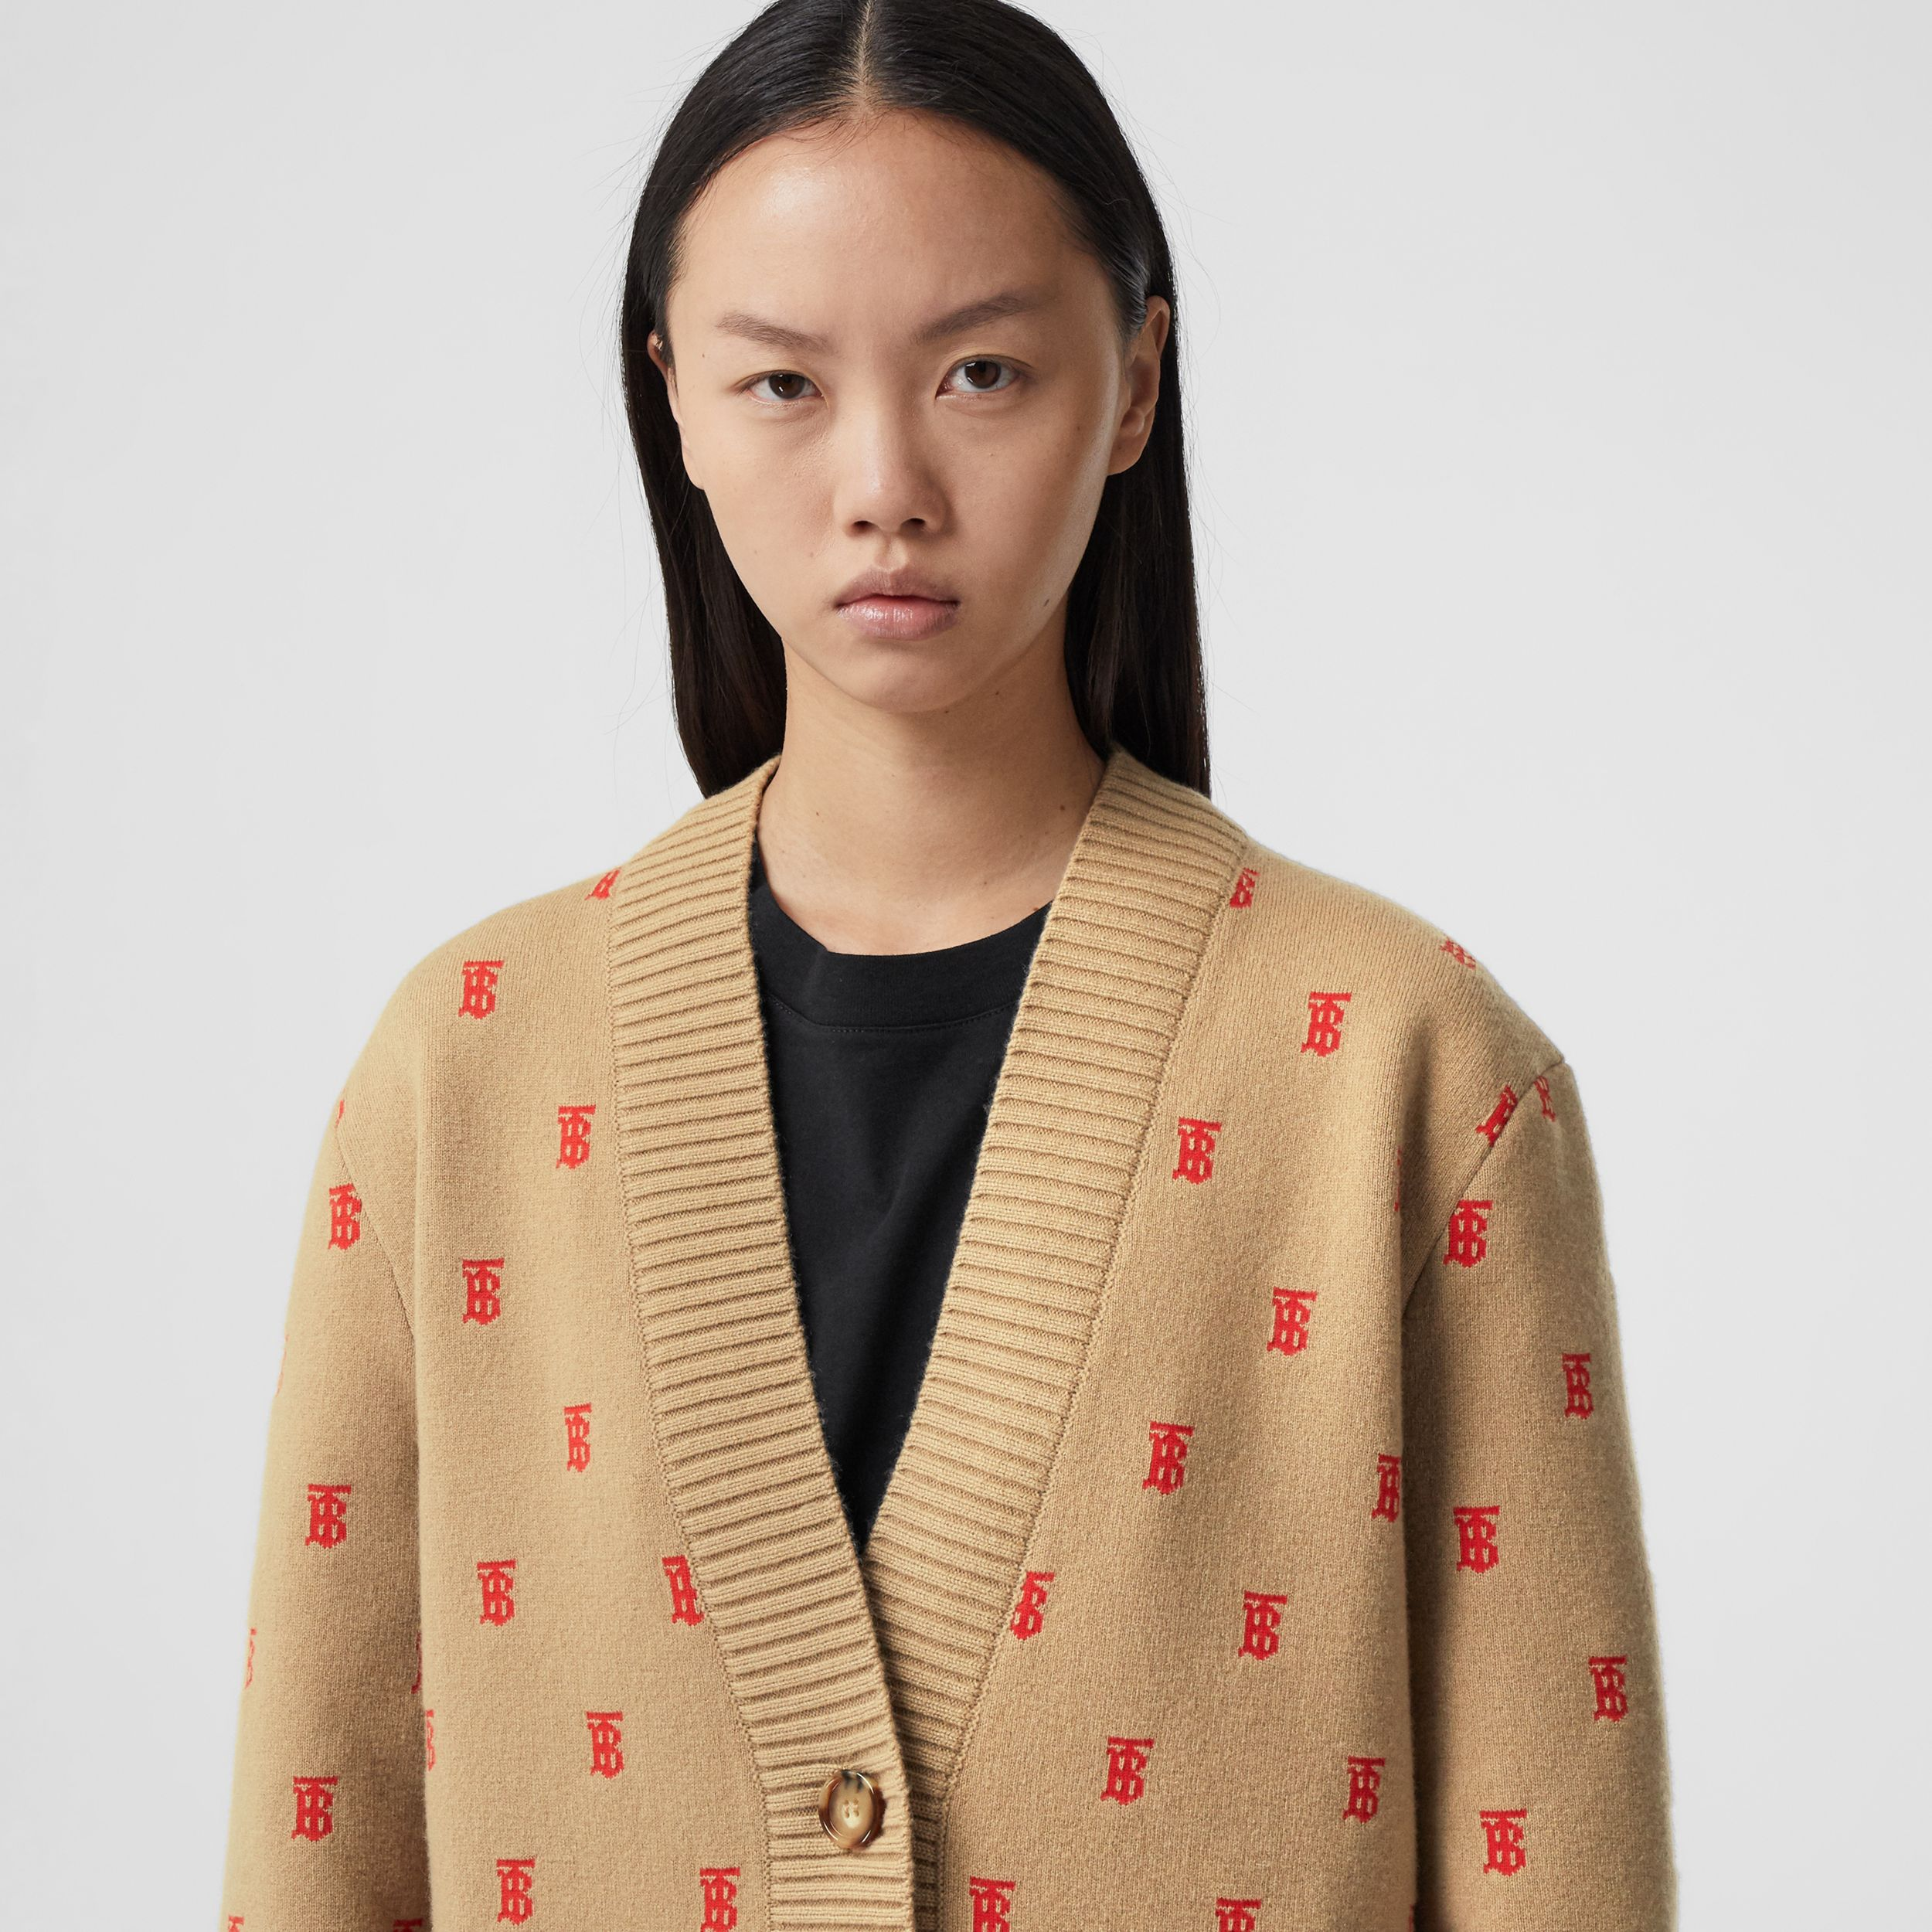 Monogram Wool Cashmere Blend Oversized Cardigan in Archive Beige - Women | Burberry Canada - 2